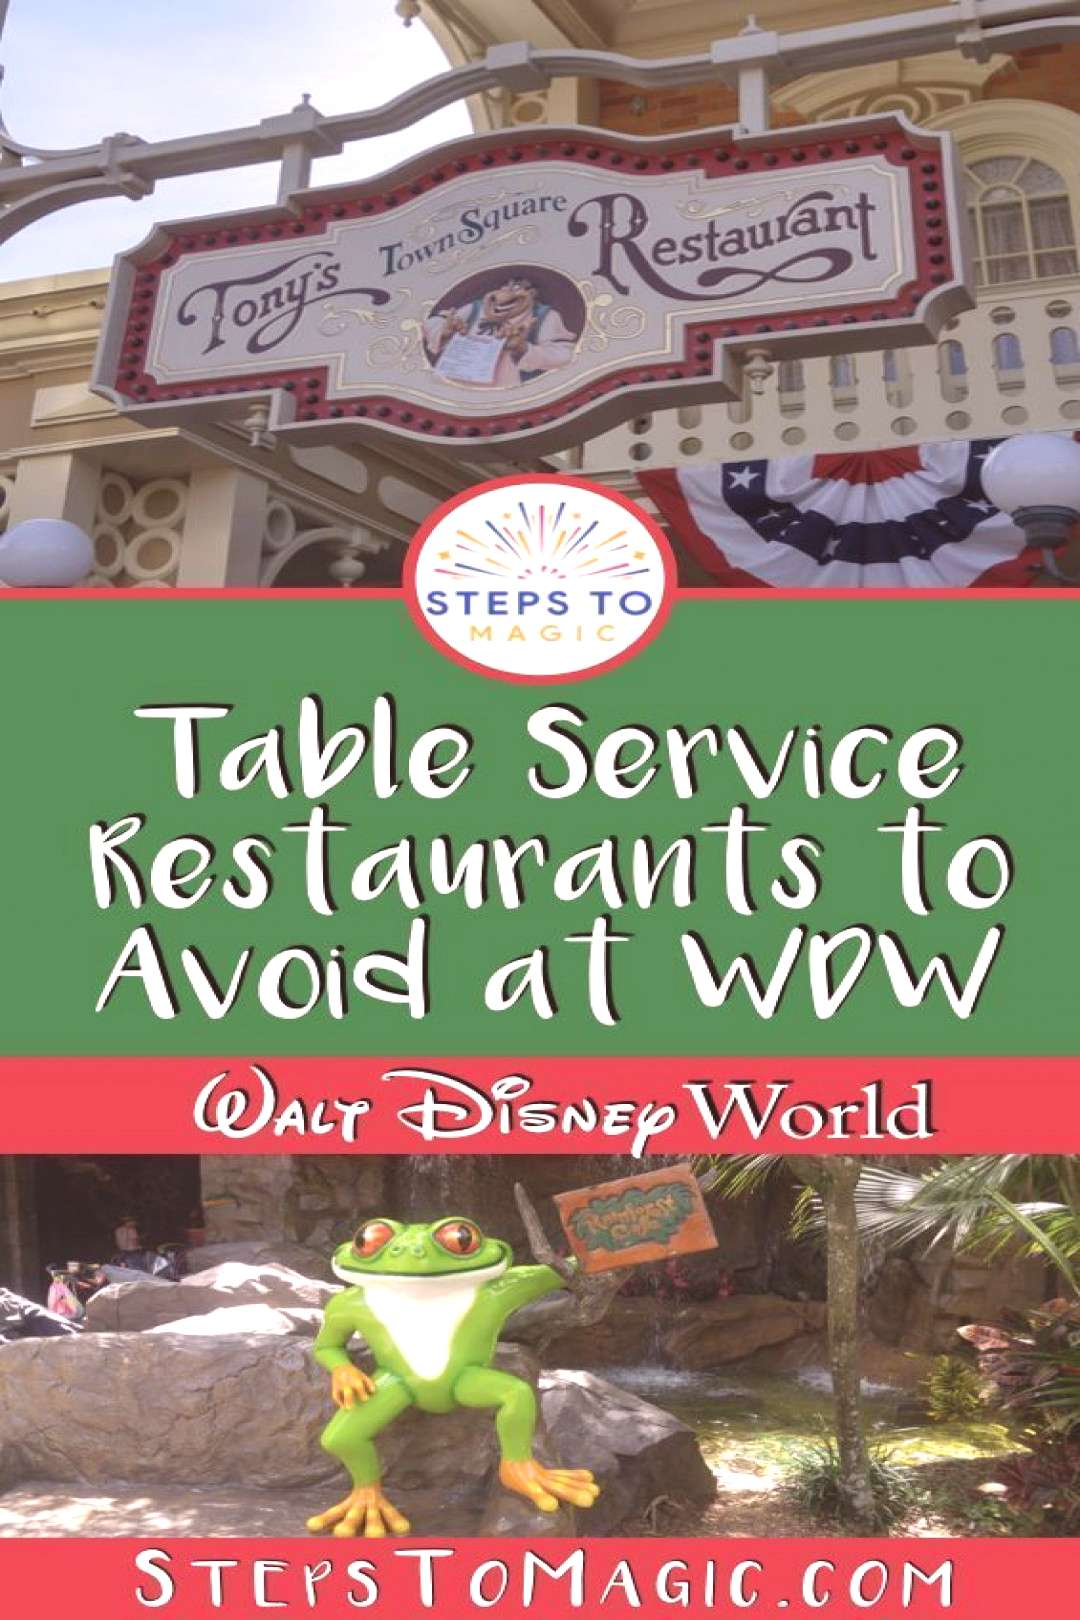 Table service restaurants to avoid at Walt Disney World - Disney ... Table service restaurants to a